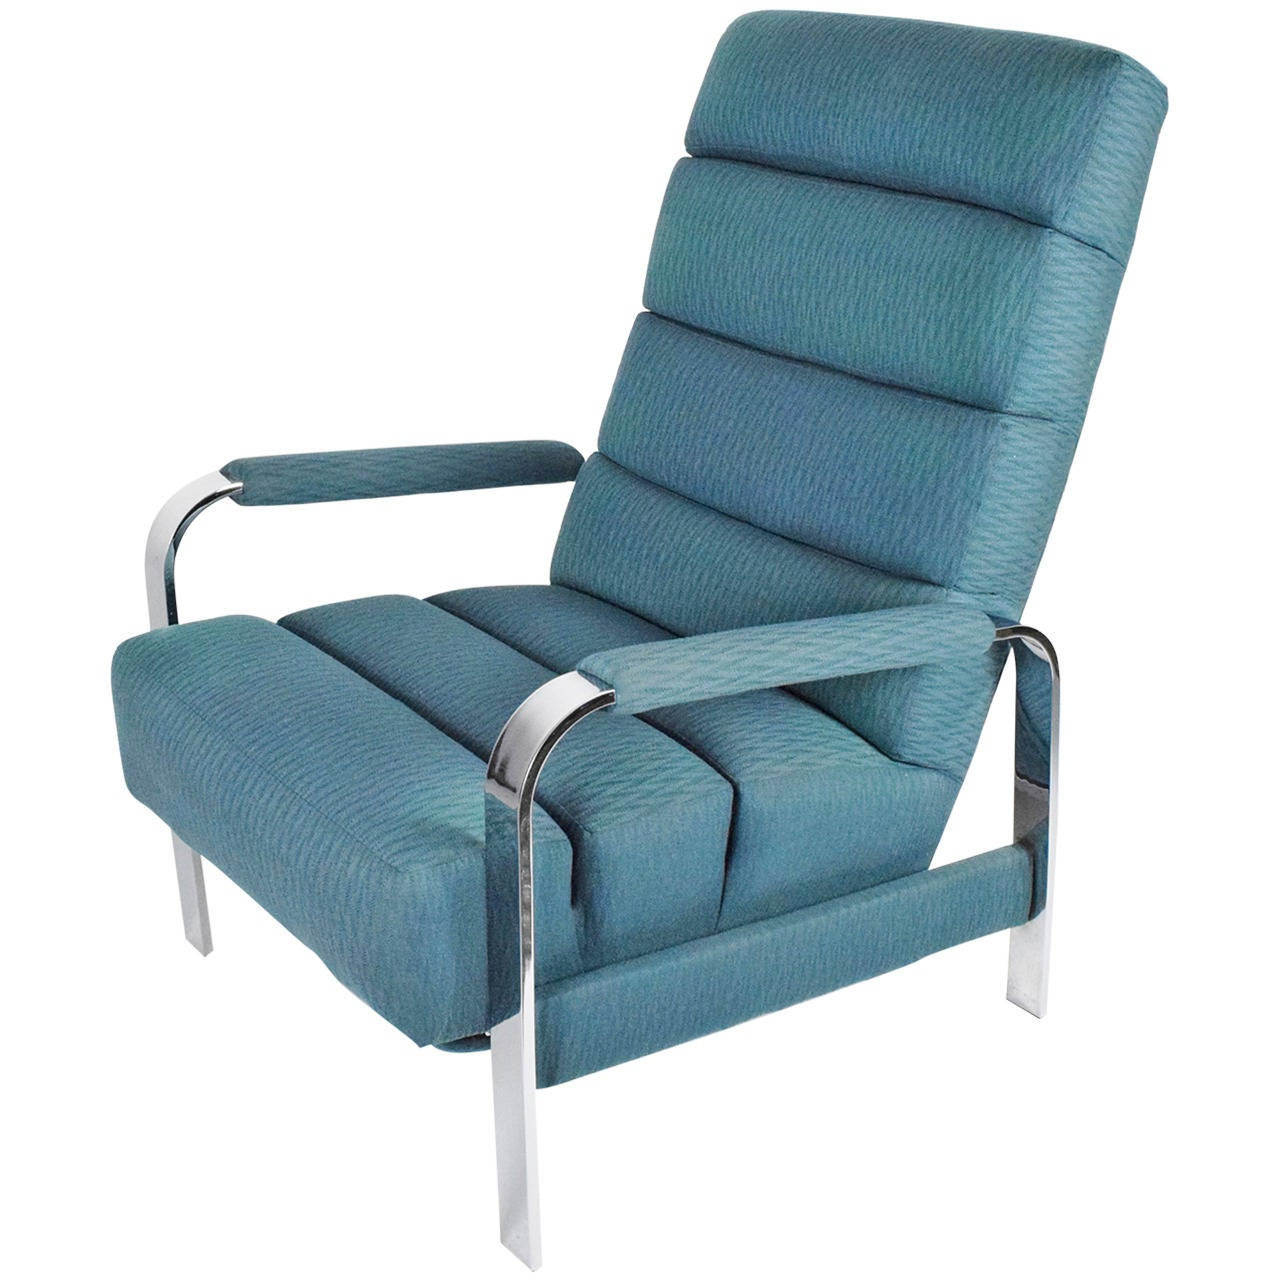 Milo Baughman Lounge Chair Recliner